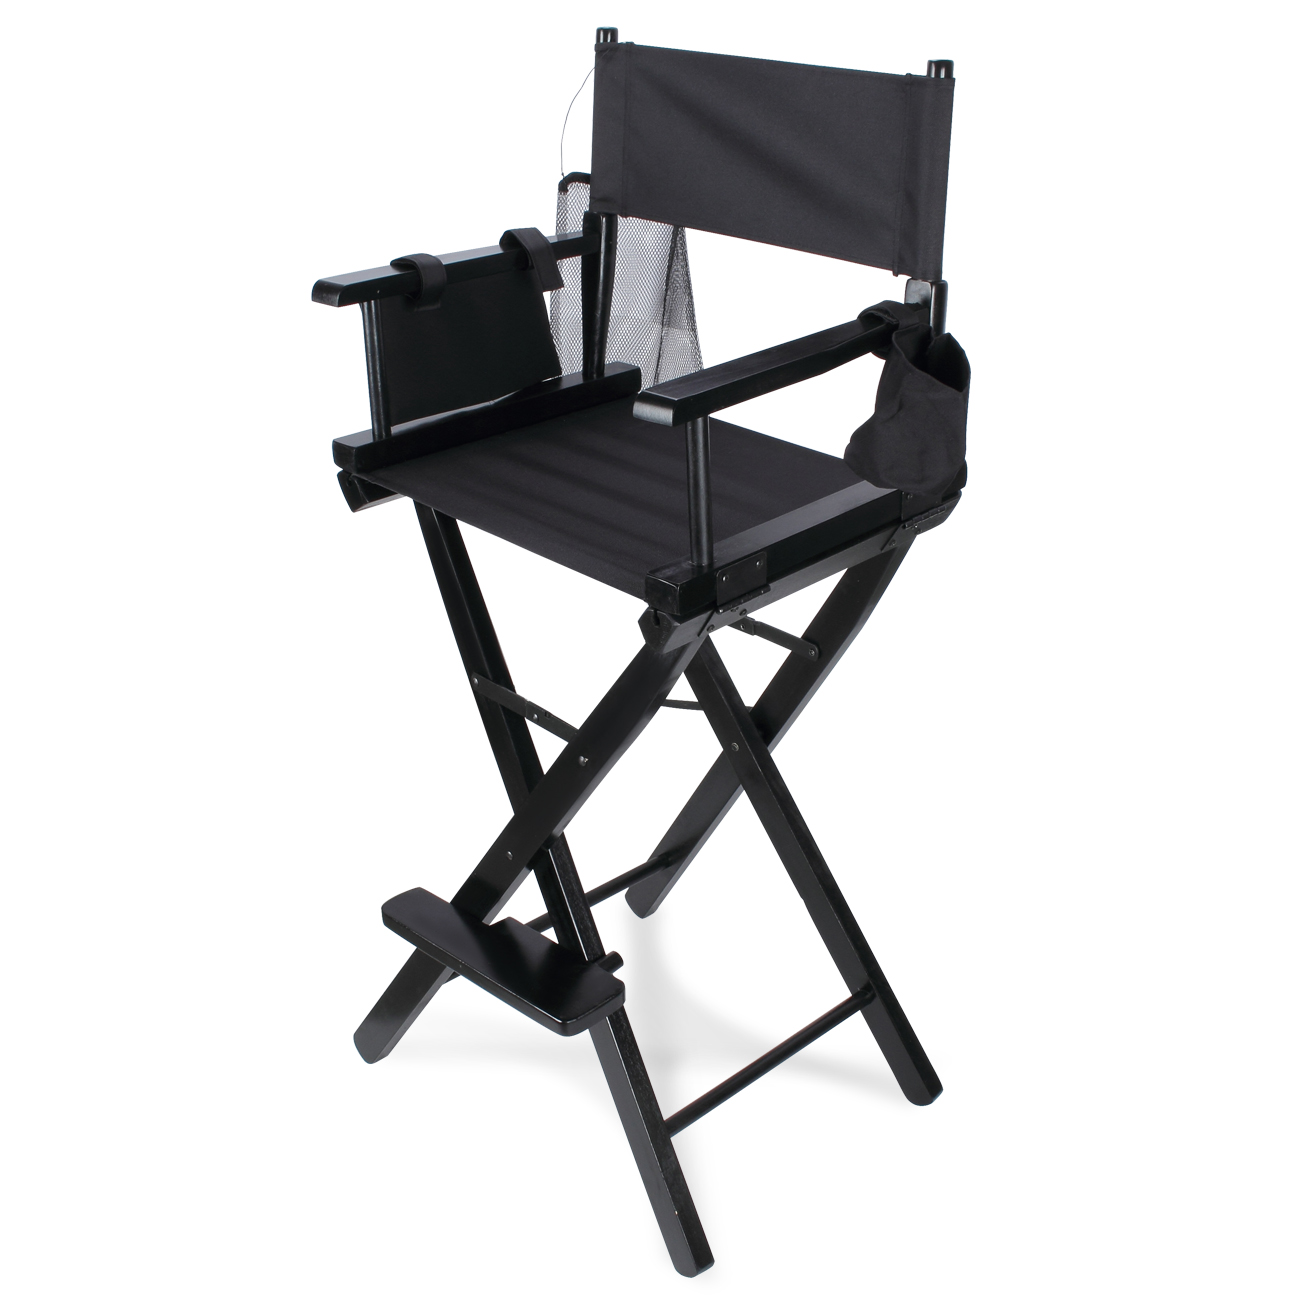 Details about Professional Makeup Artist Directors Chair Wood Light Weight Foldable Black  sc 1 st  eBay & Professional Makeup Artist Directors Chair Wood Light Weight ...